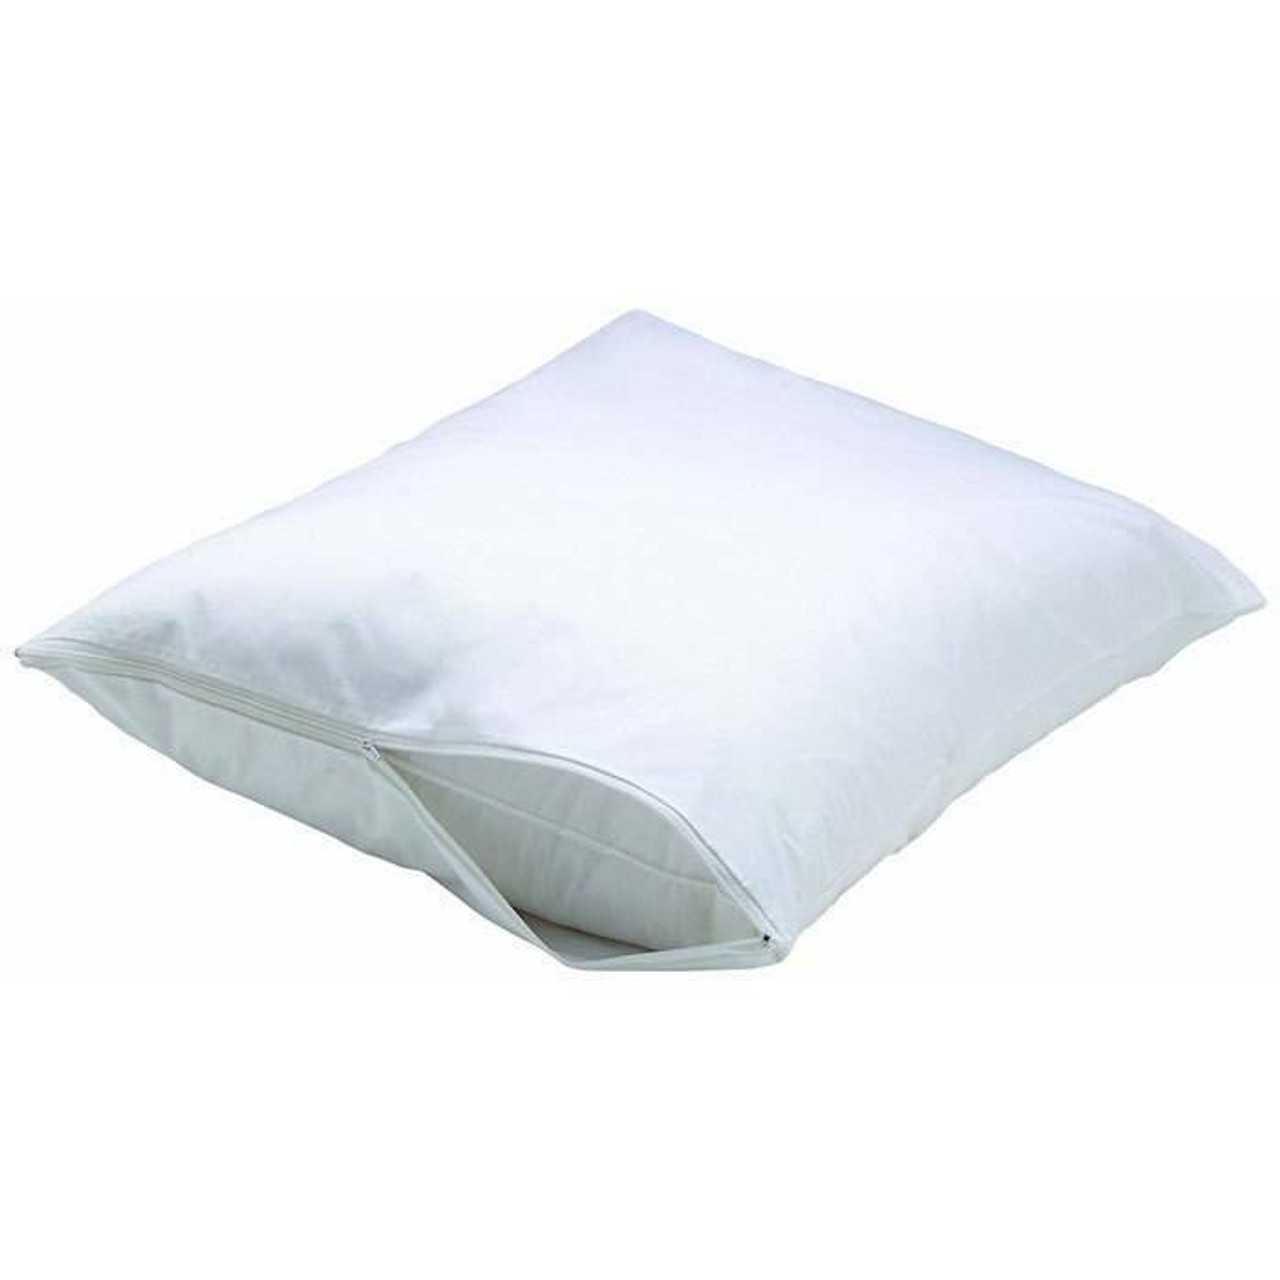 WestPoint/Martex WestPoint or Martex Basics or Zippered Pillow Protector